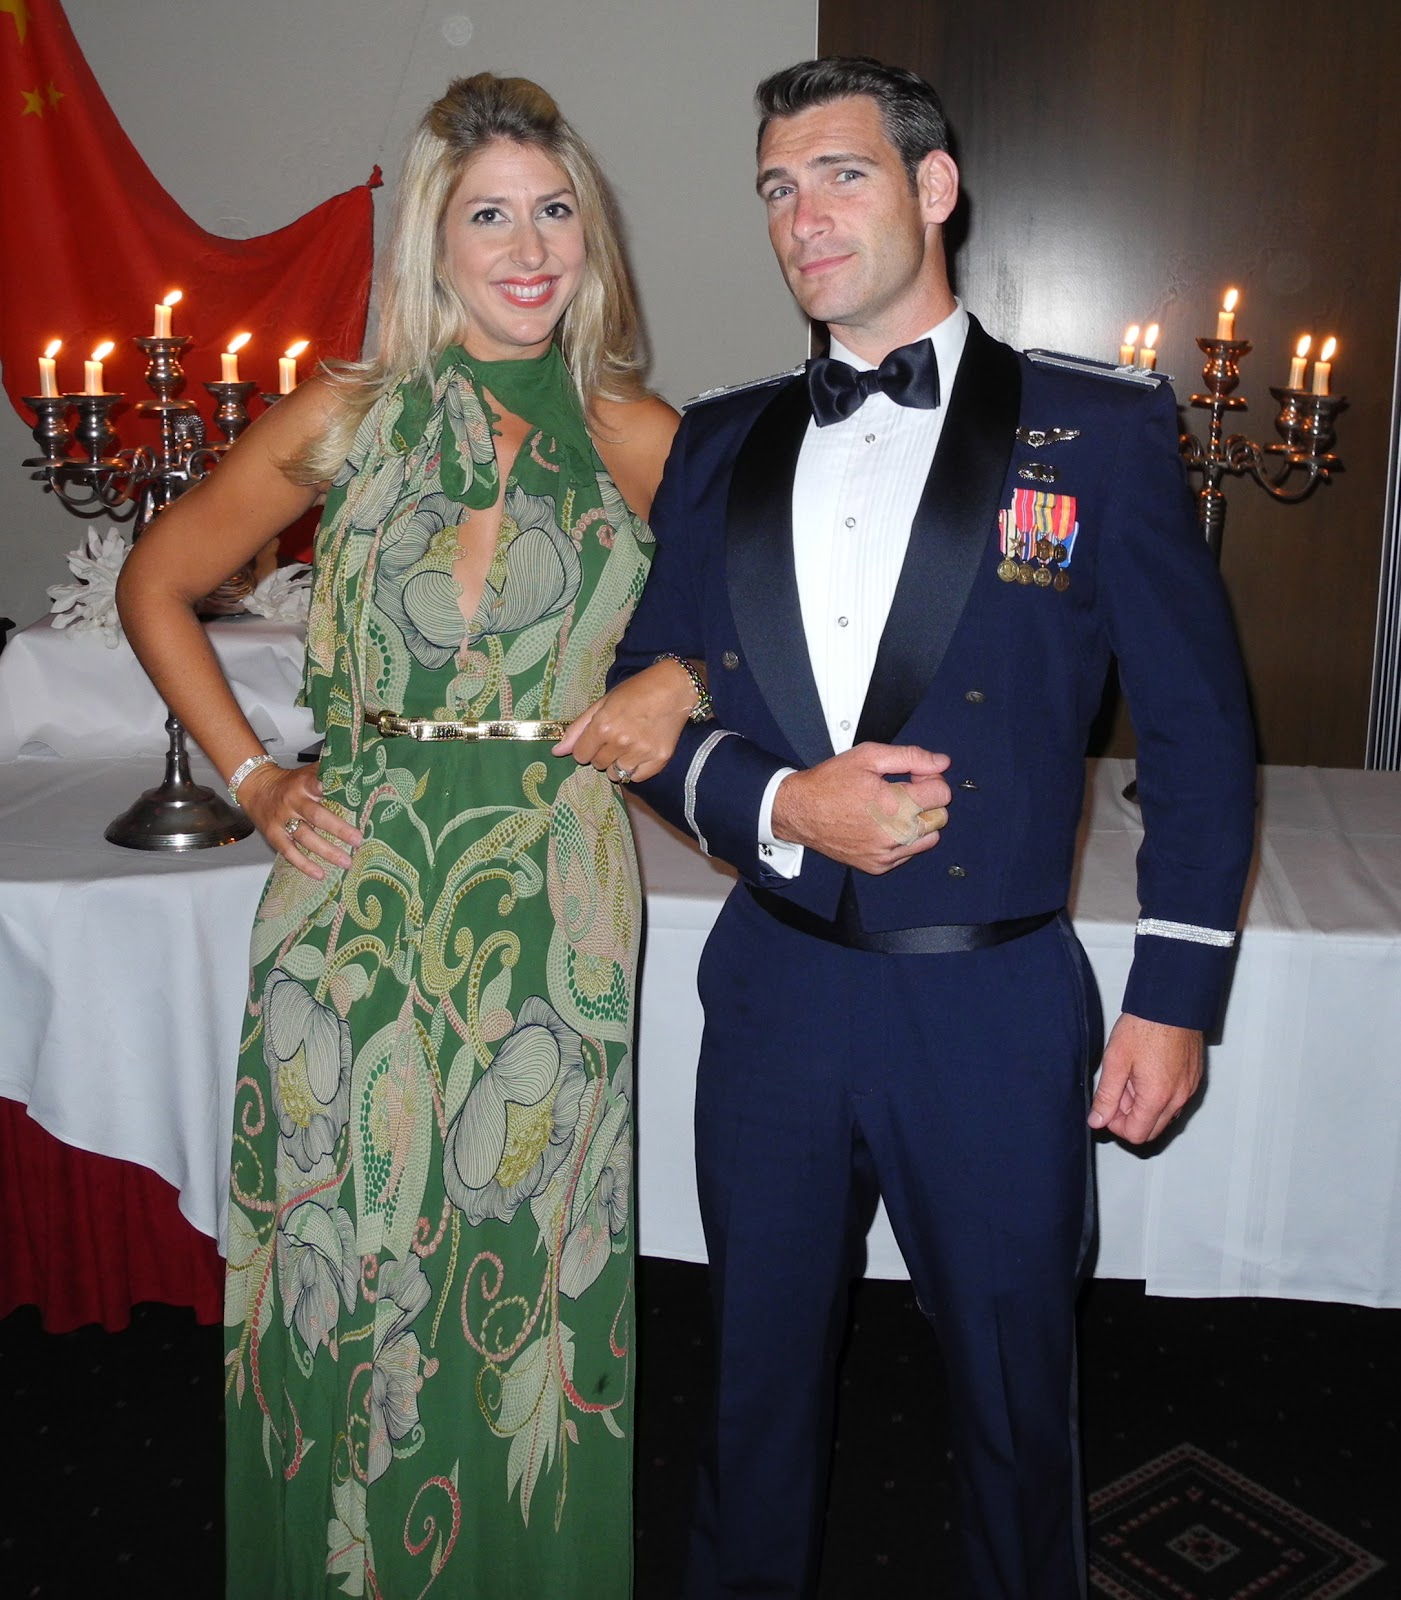 The Clough Chronicles: Having a Ball at the Air Force Ball